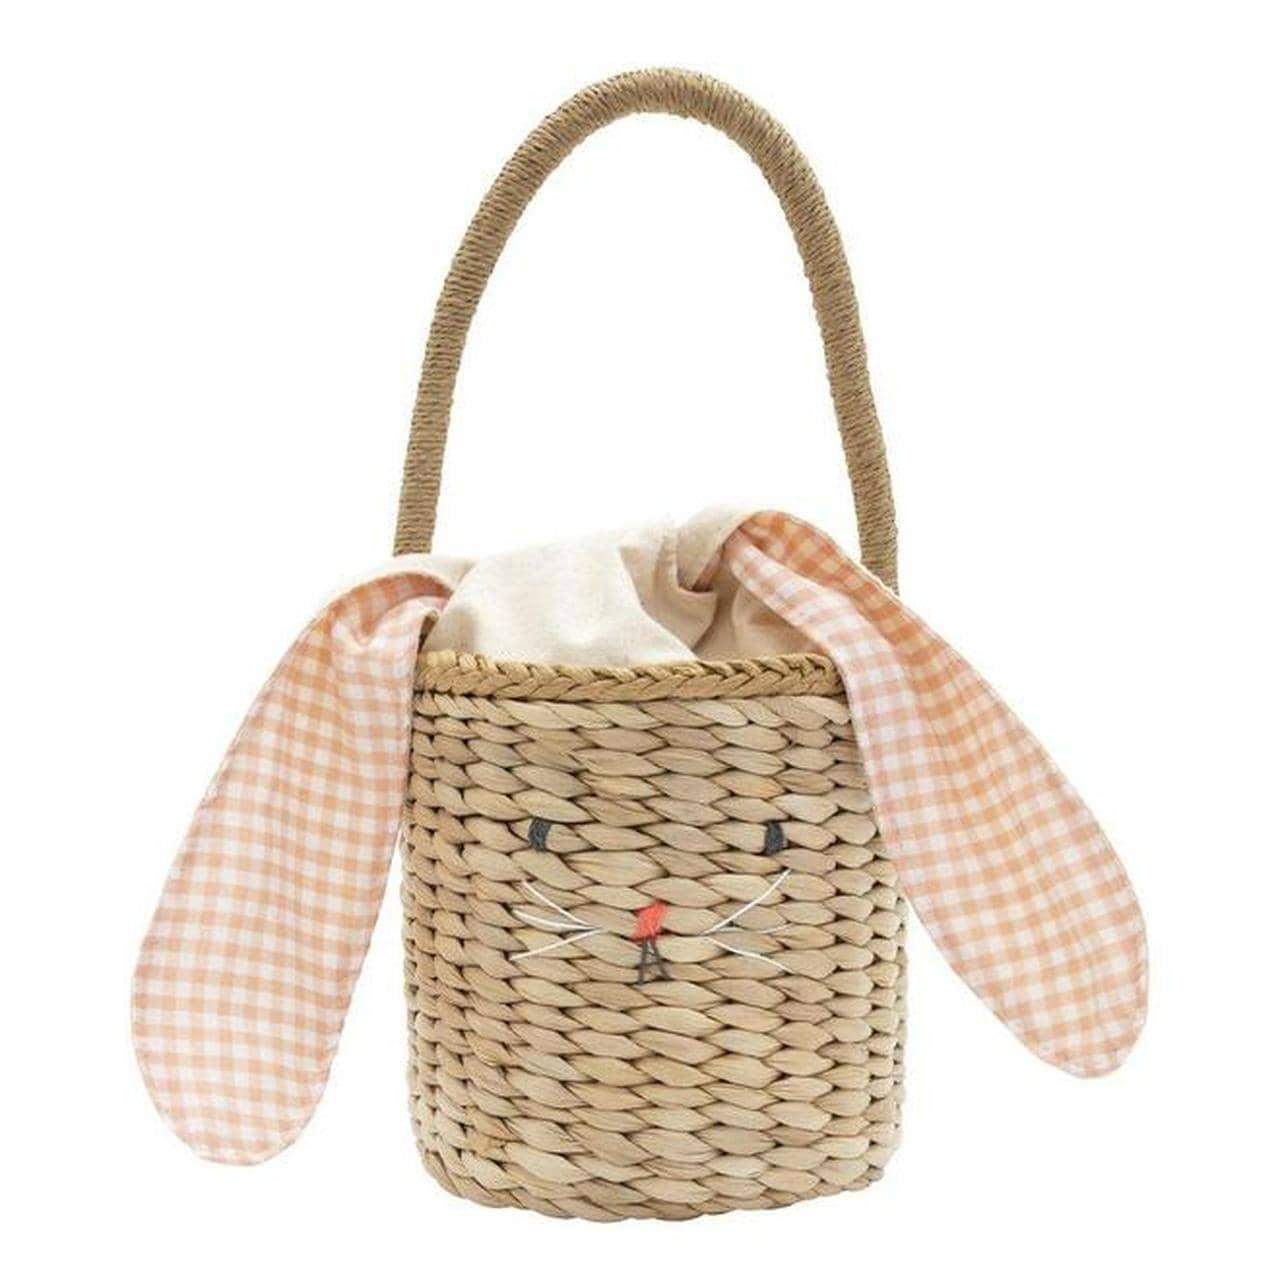 Woven Bunny Straw Bag-Kidding Around NYC